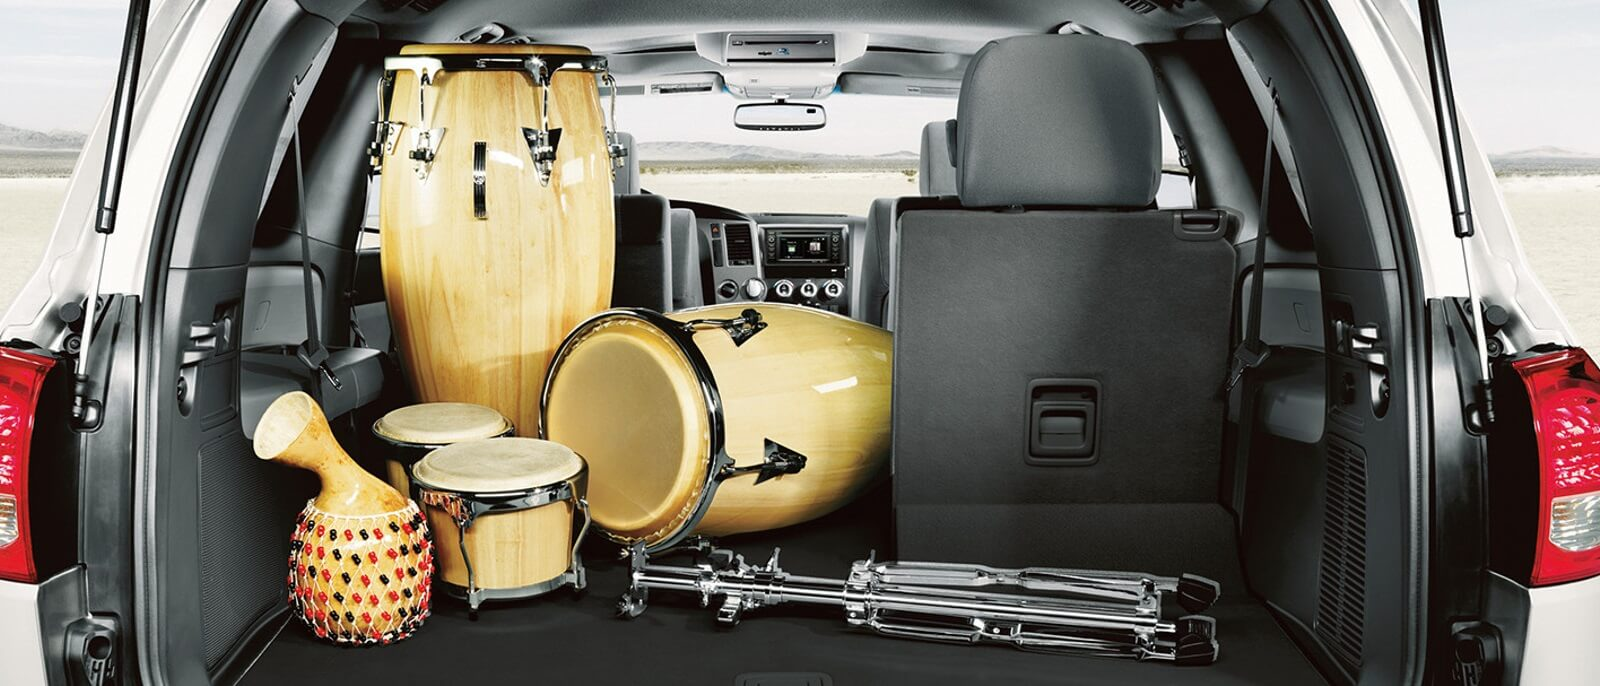 2016 Toyota Sequoia trunk